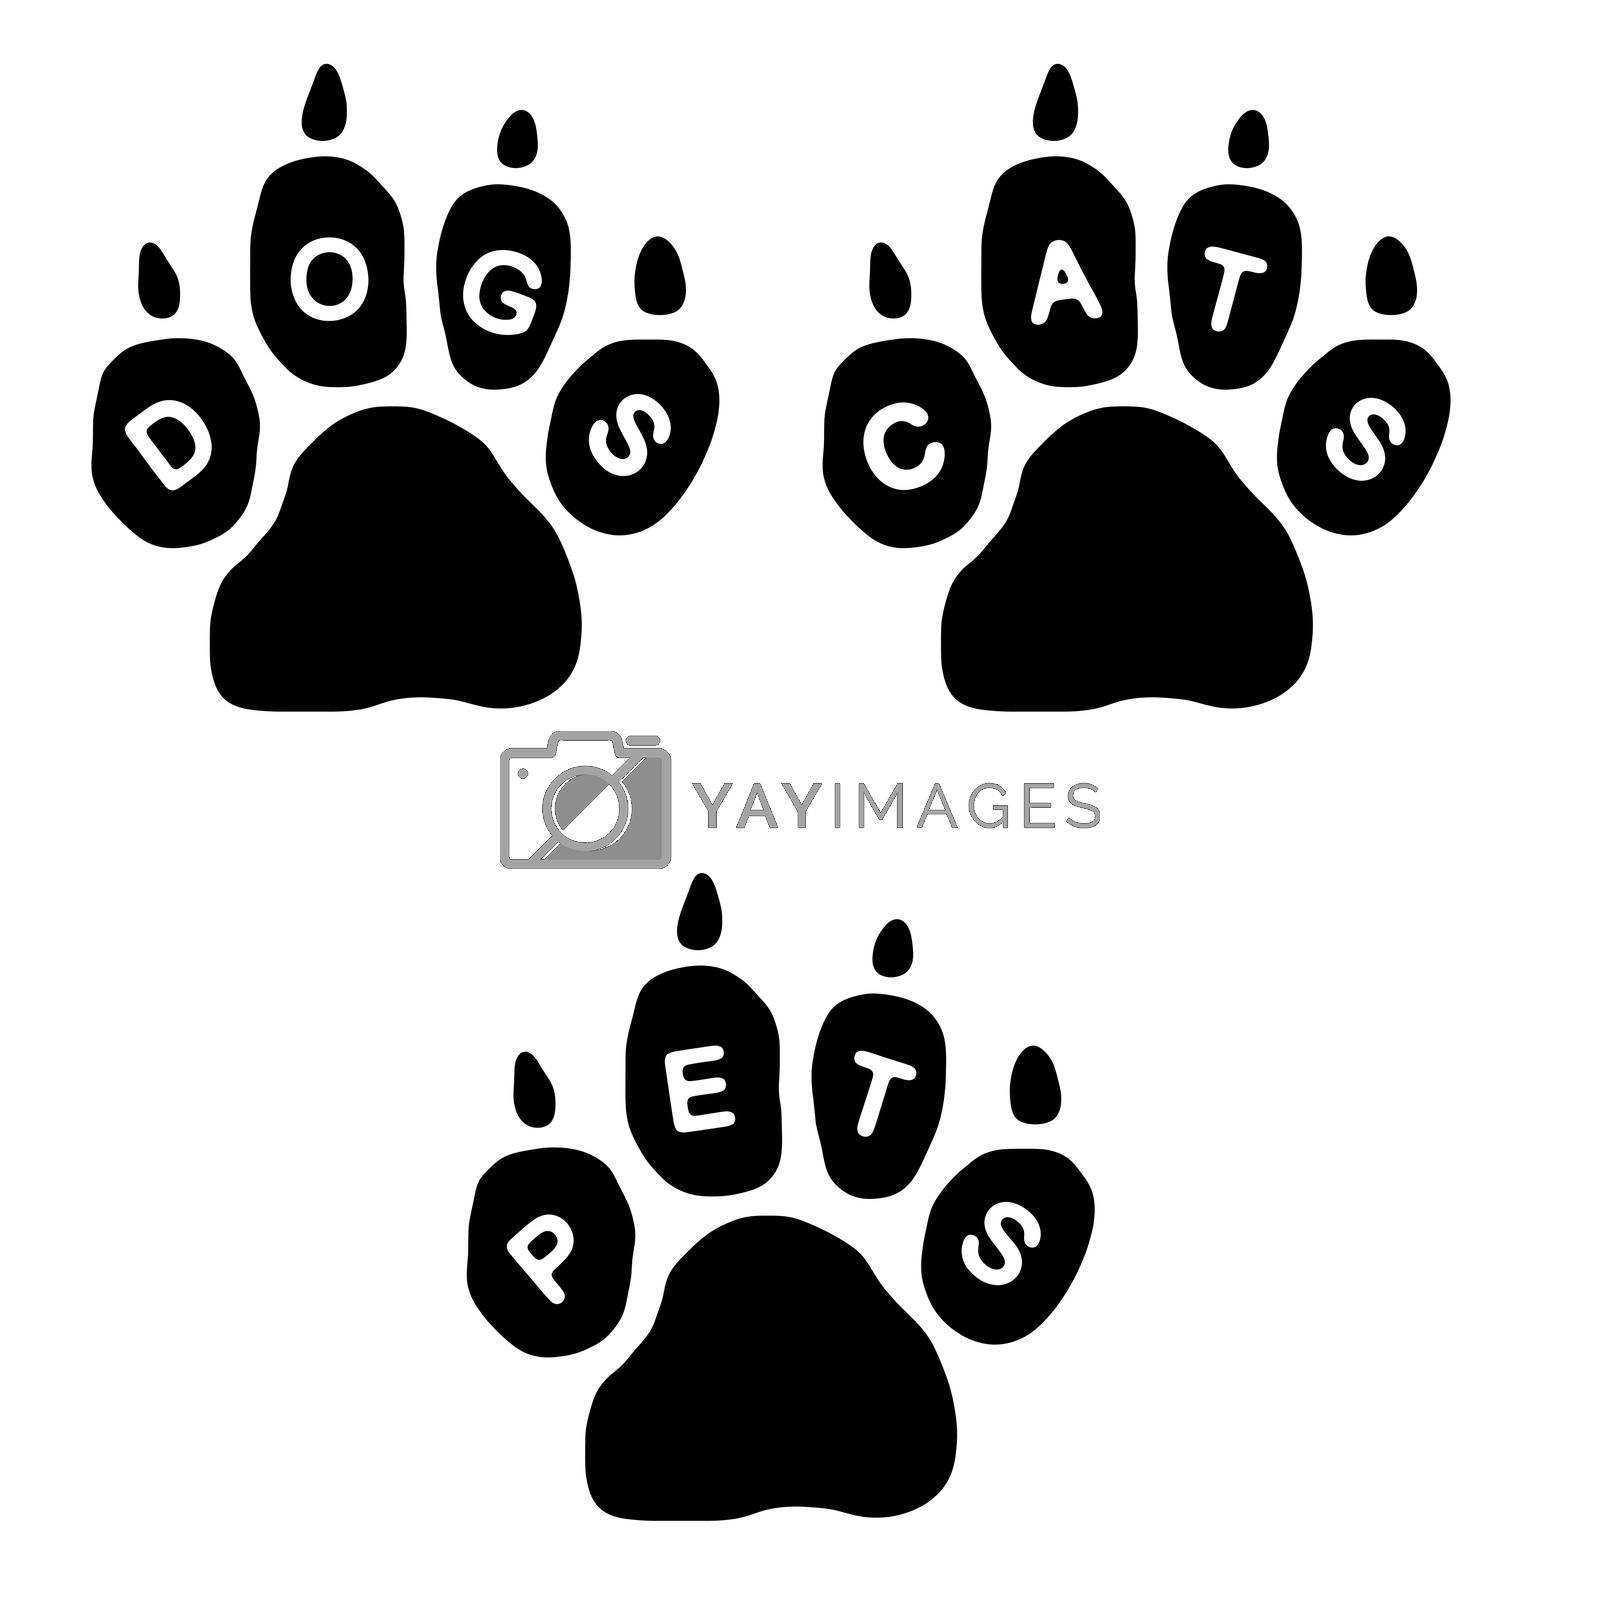 3 paws with the text Dogs, Cats and Pets